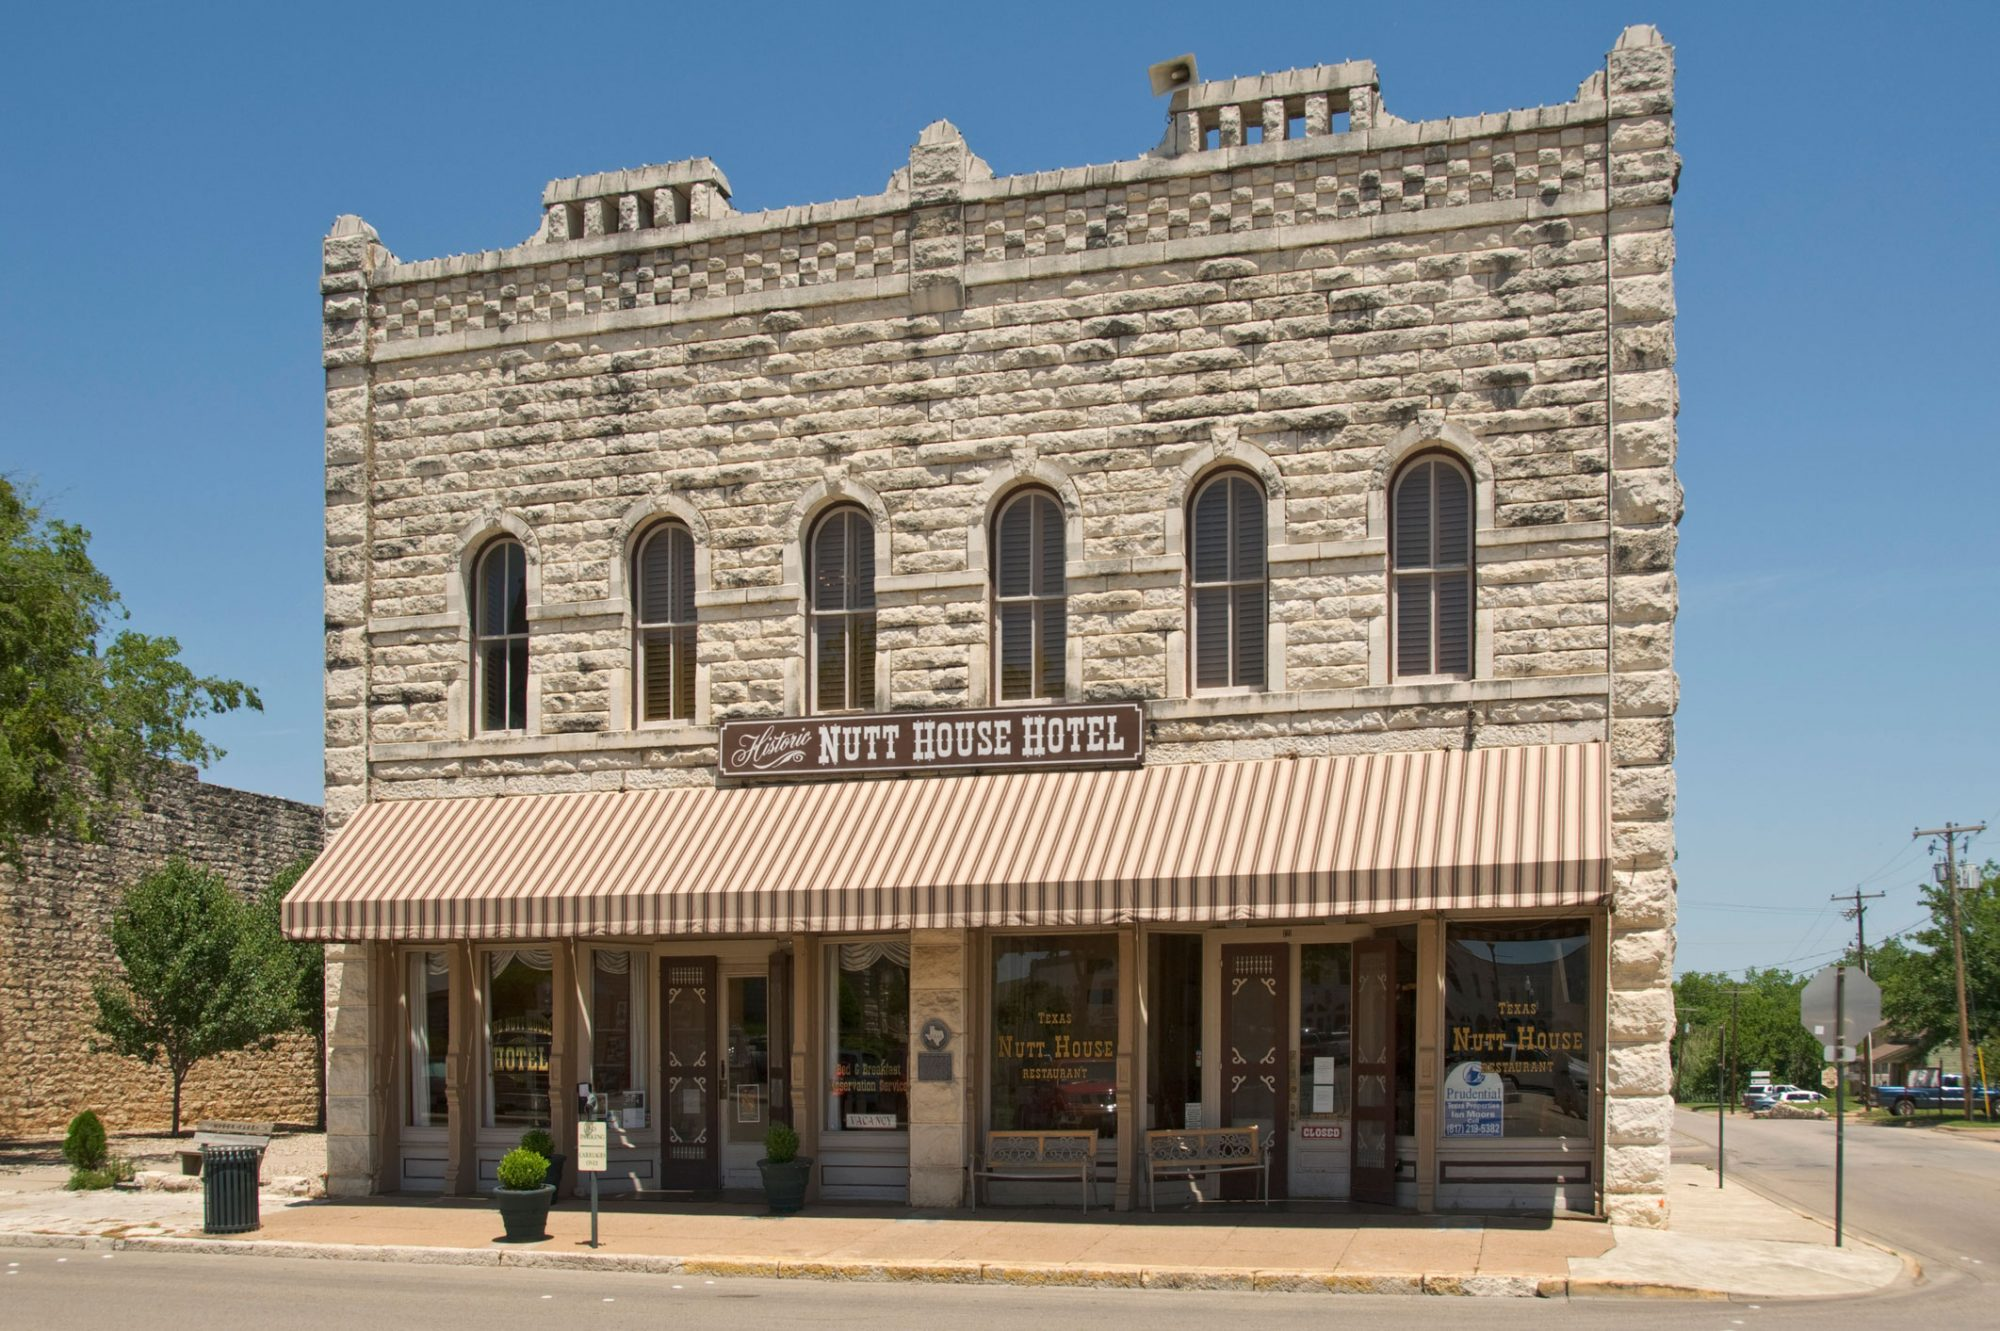 Nutt House Hotel in Granbury, TX